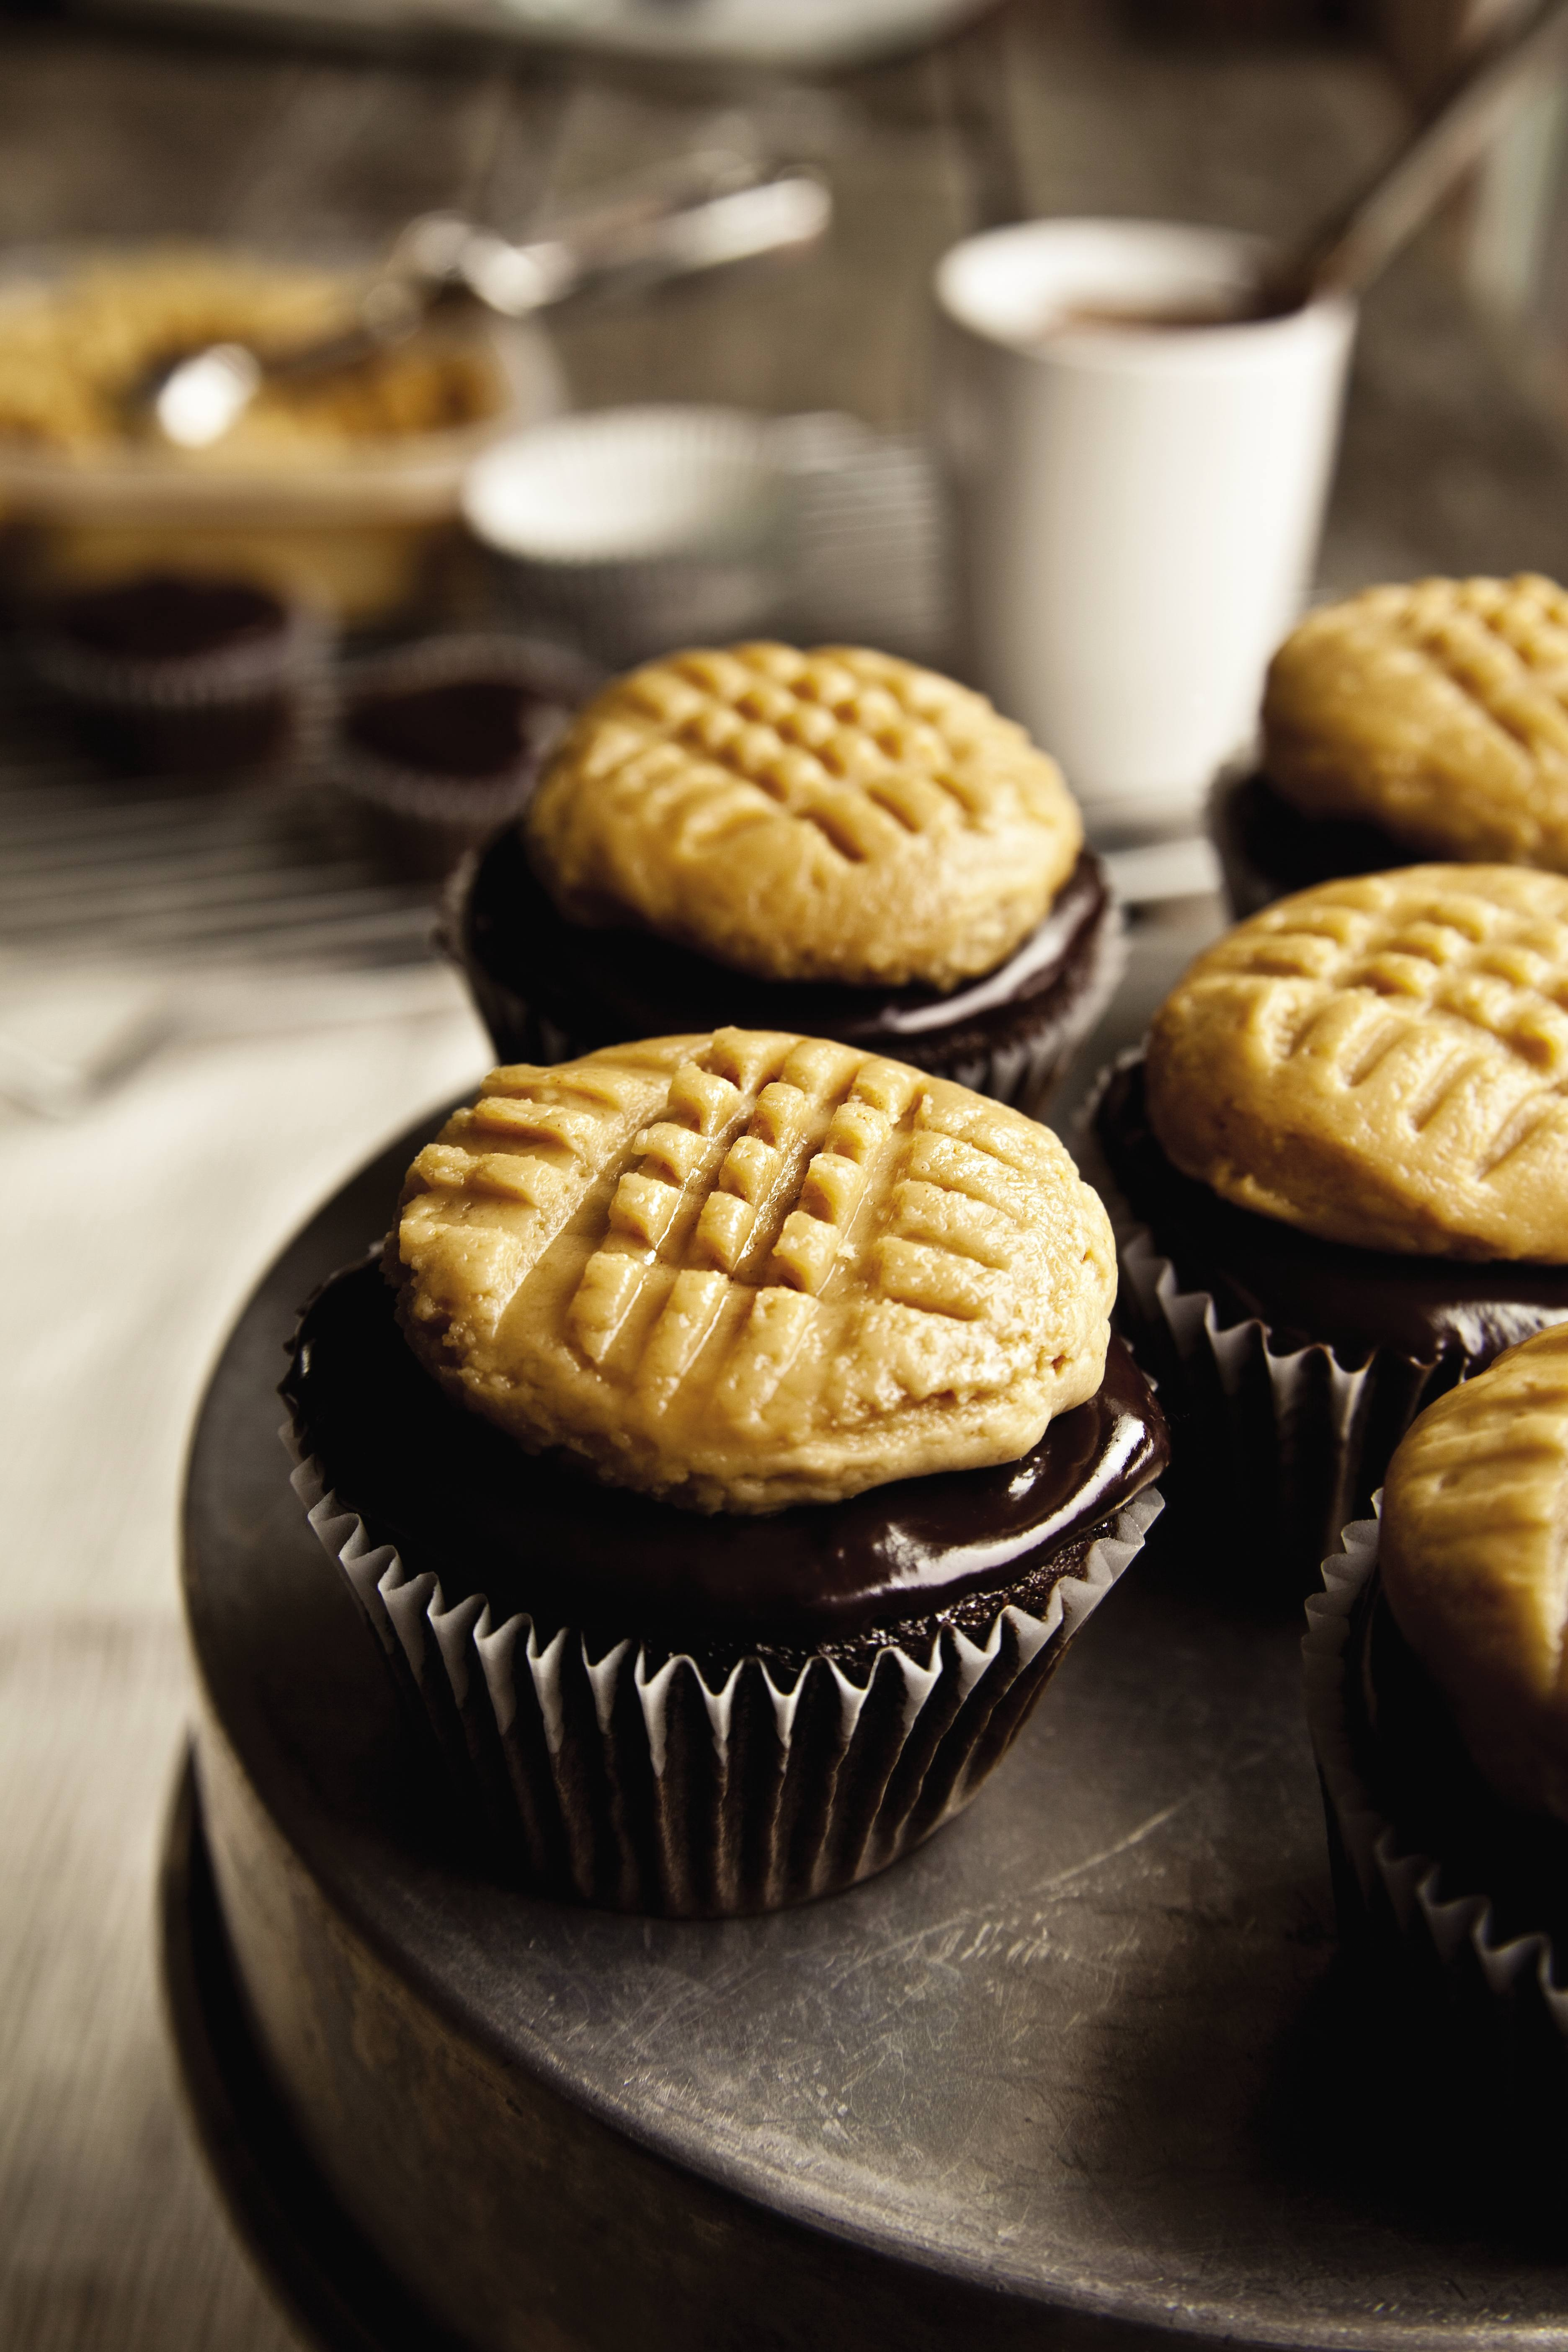 Chocolate Cupcakes with Peanut Butter Cookie Frosting